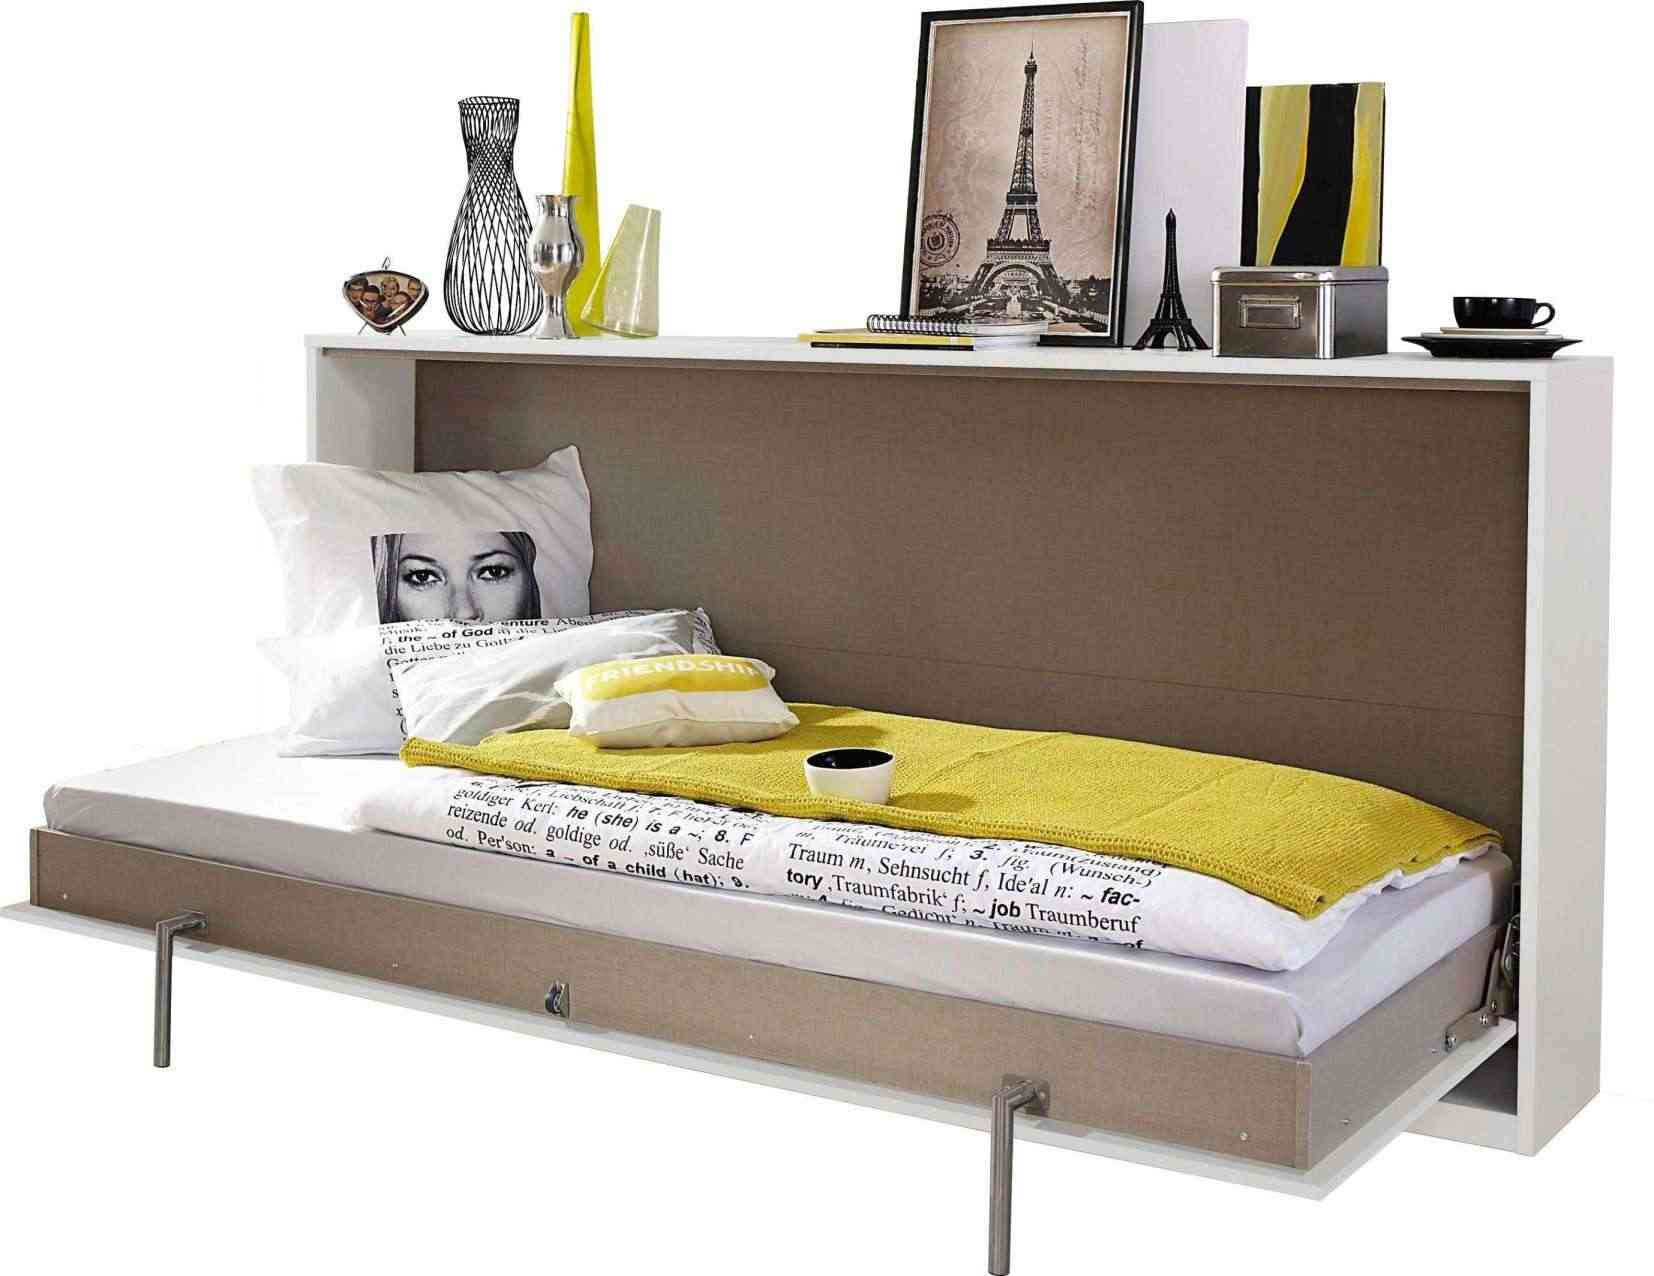 73 Awesome Gallery Of Extra Long Twin Bed Frame Ikea Ikea Bedroom Furniture Bedroom Furniture Sets Bedroom Interior